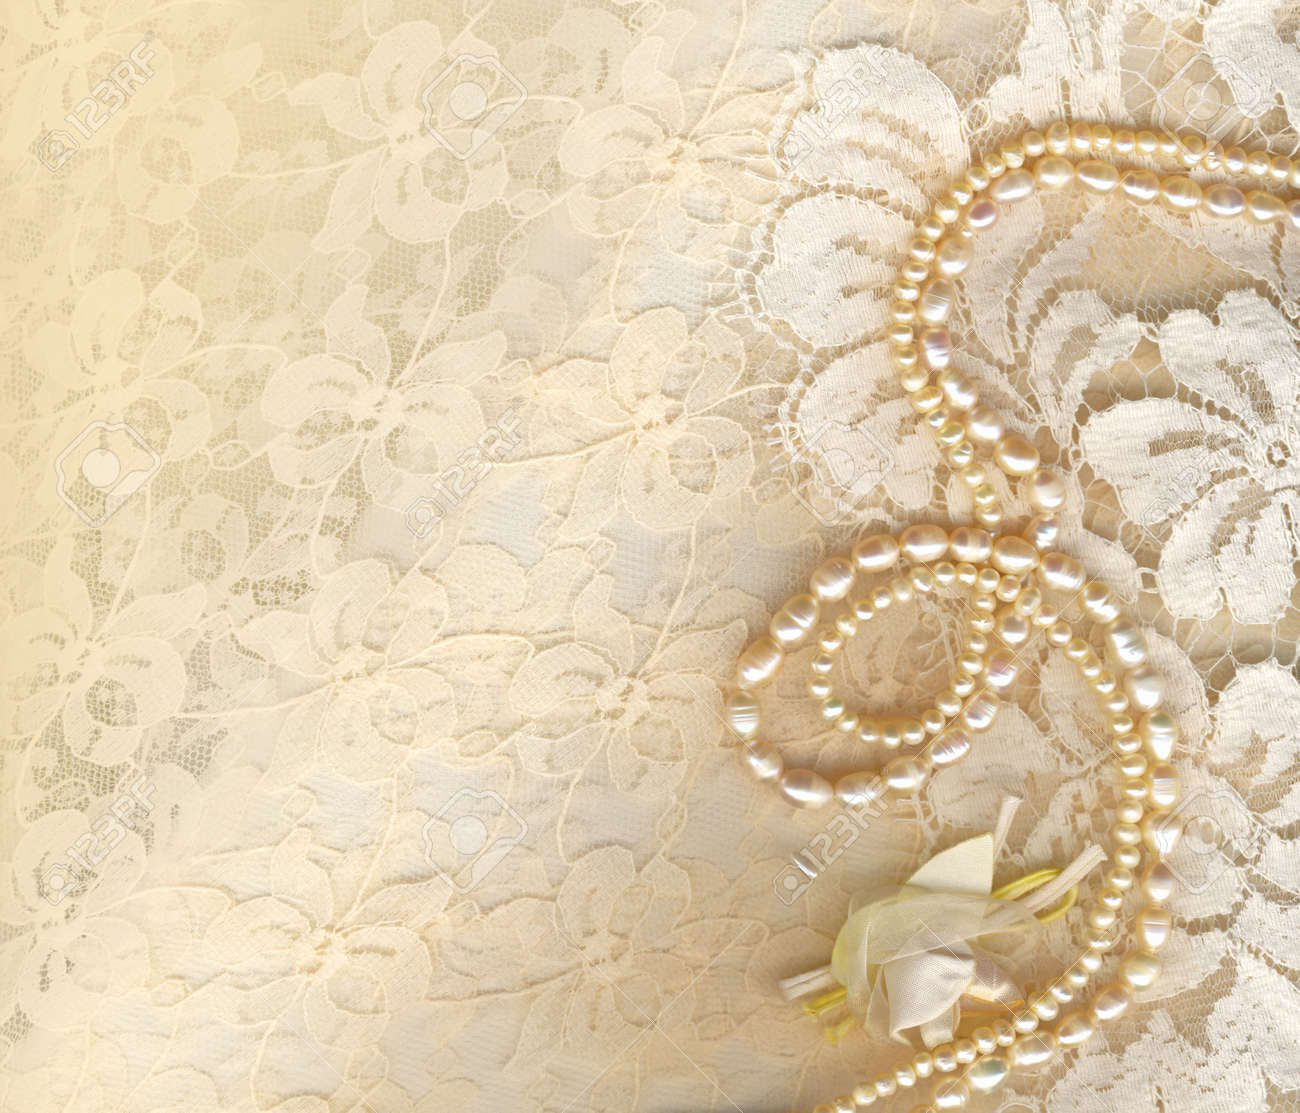 Wallpapers For gt Vintage Lace And Pearls Background